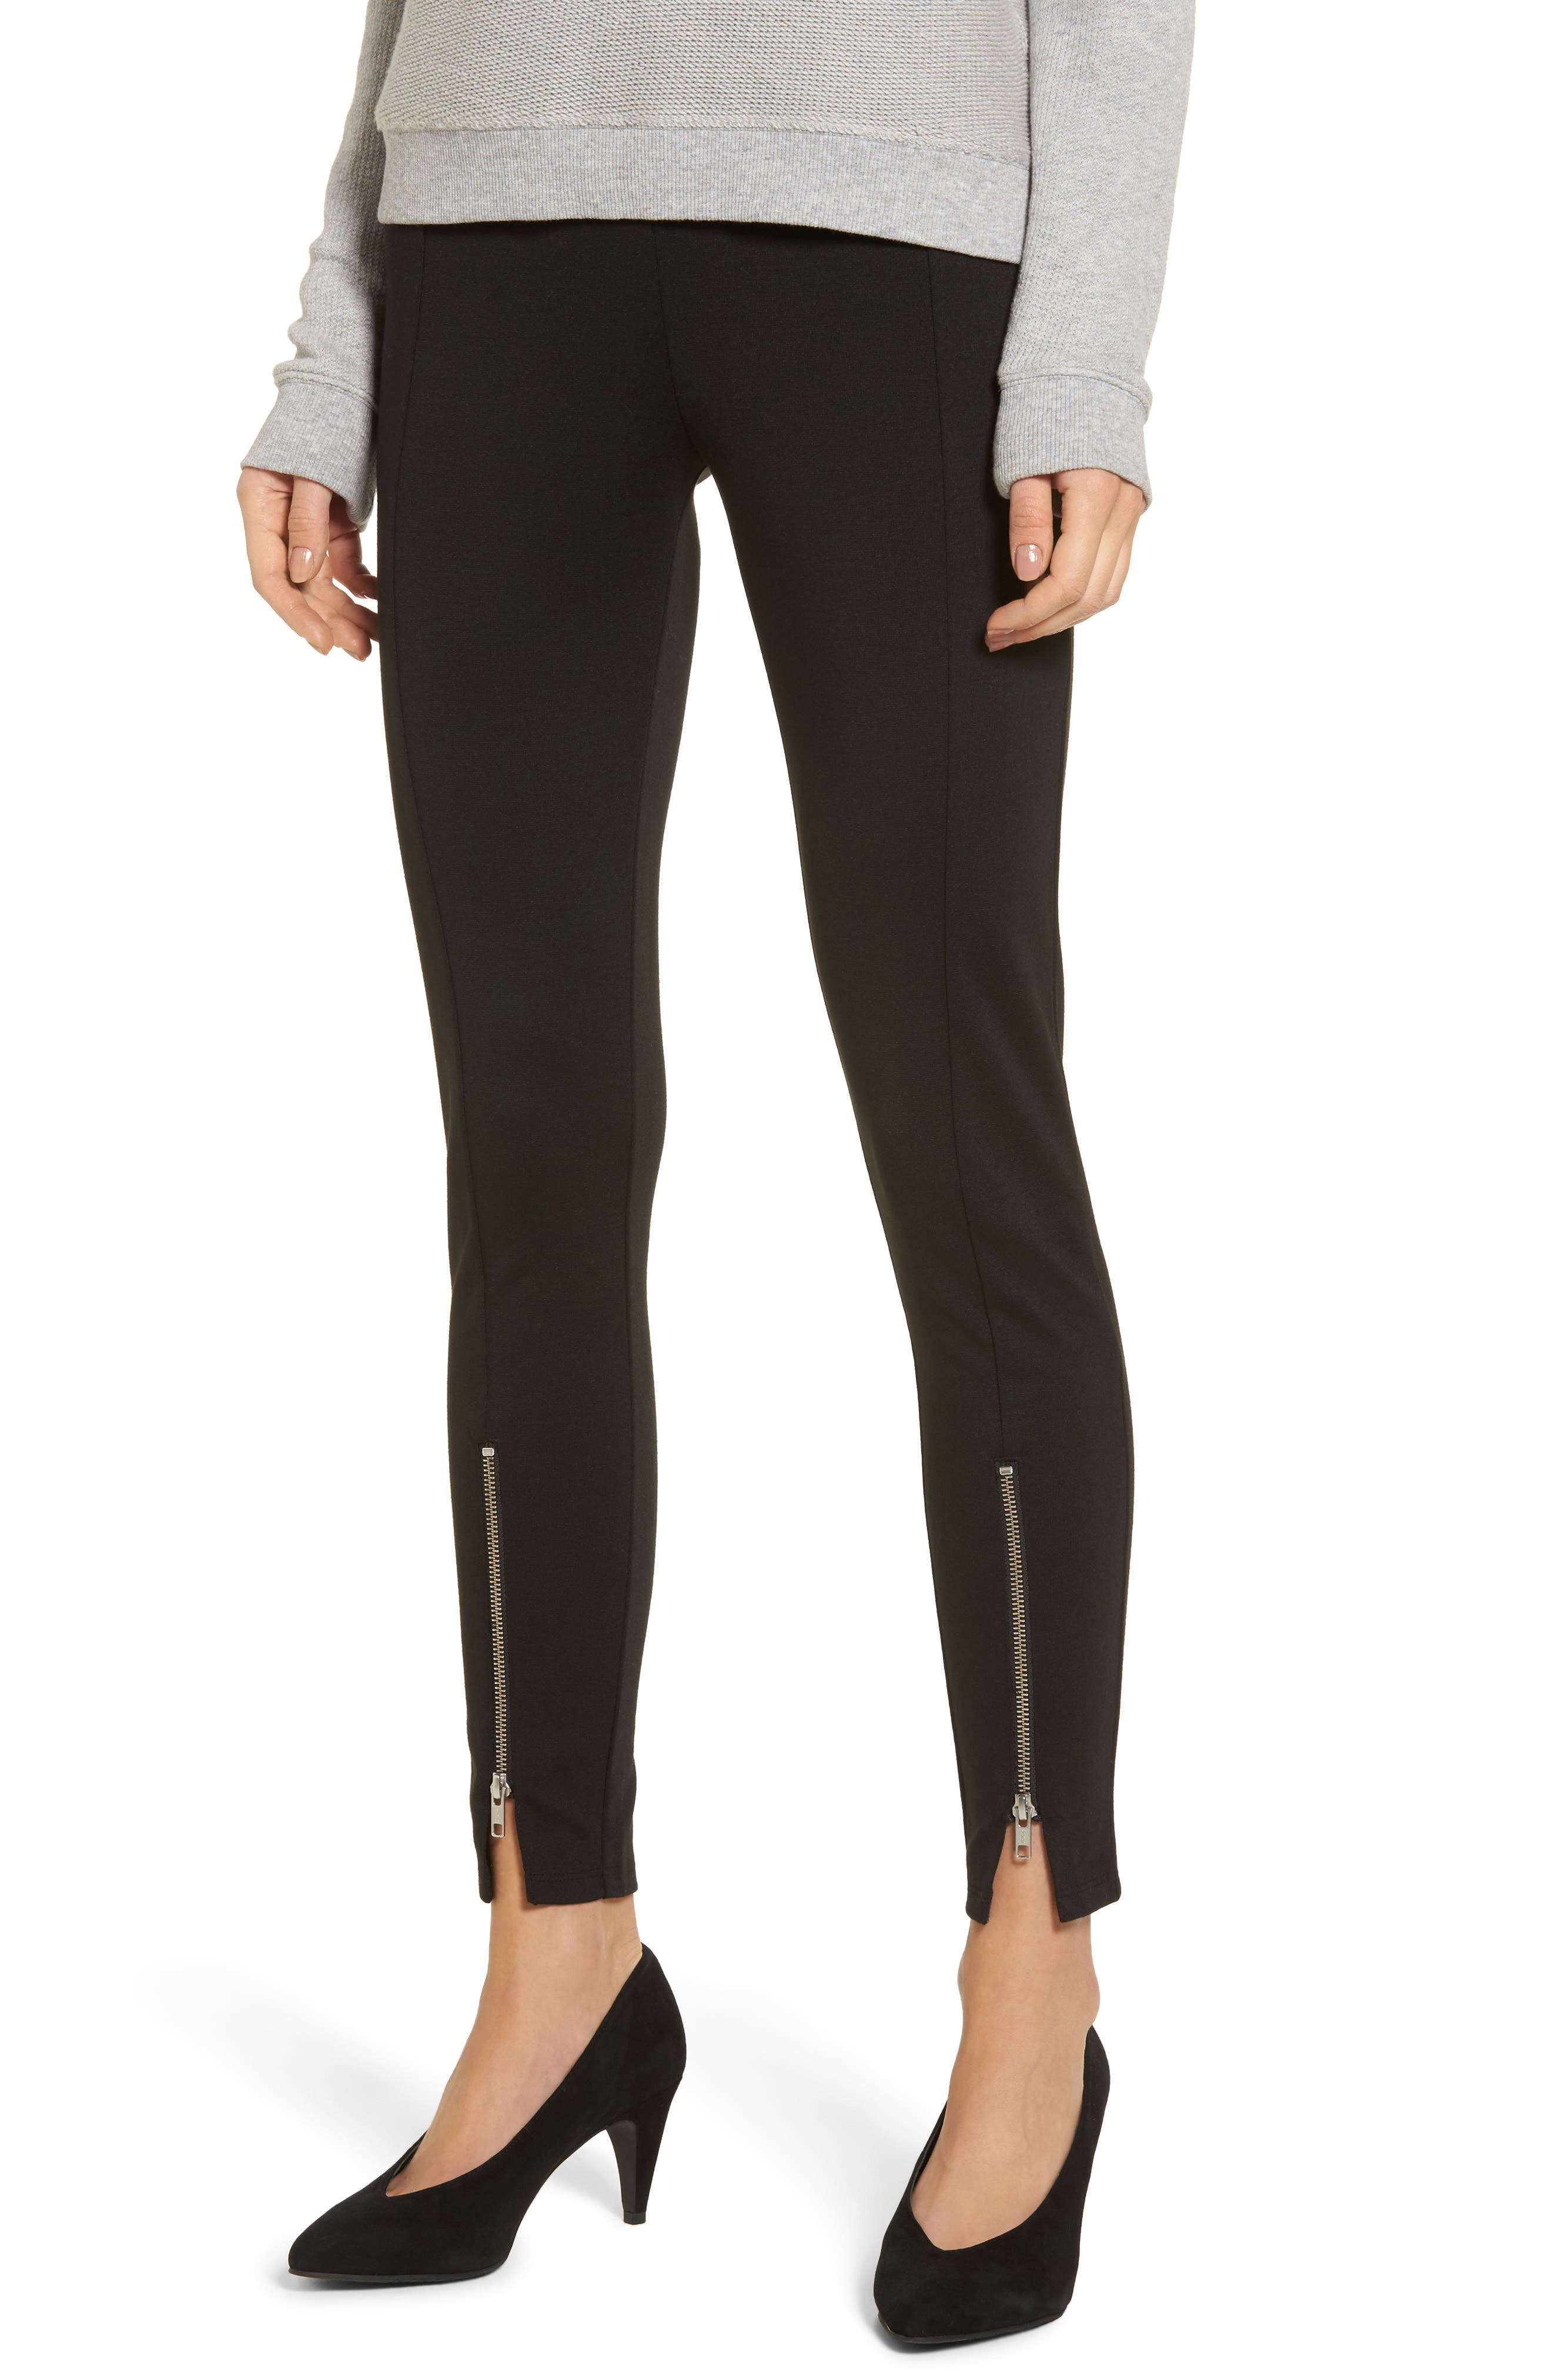 Main Image - BP. High-Waist Ankle Zip Leggings